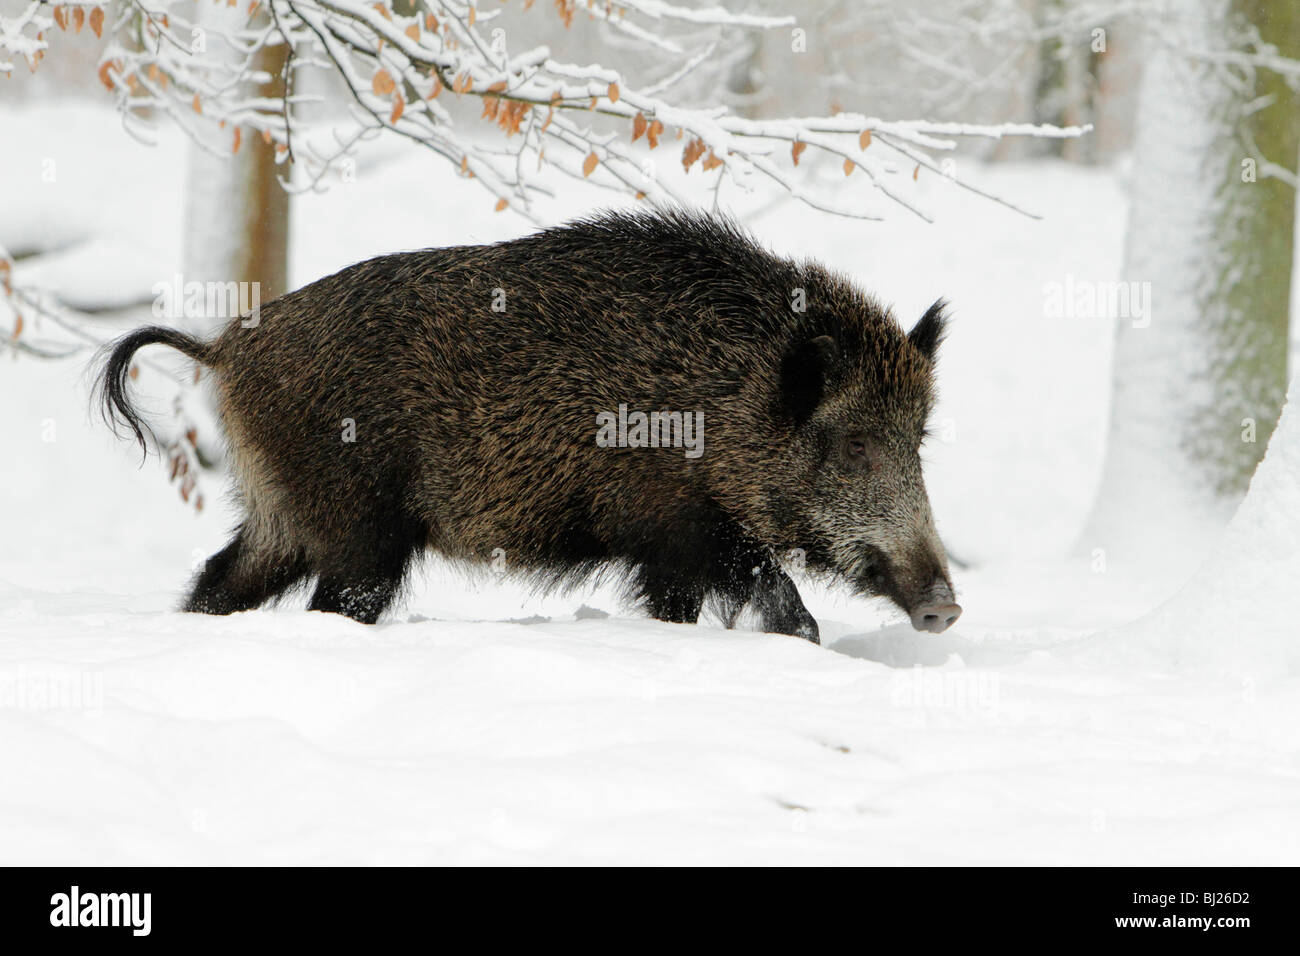 Wild Boar, Sus Scrofa, sow walking through snow covered forest, Germany - Stock Image